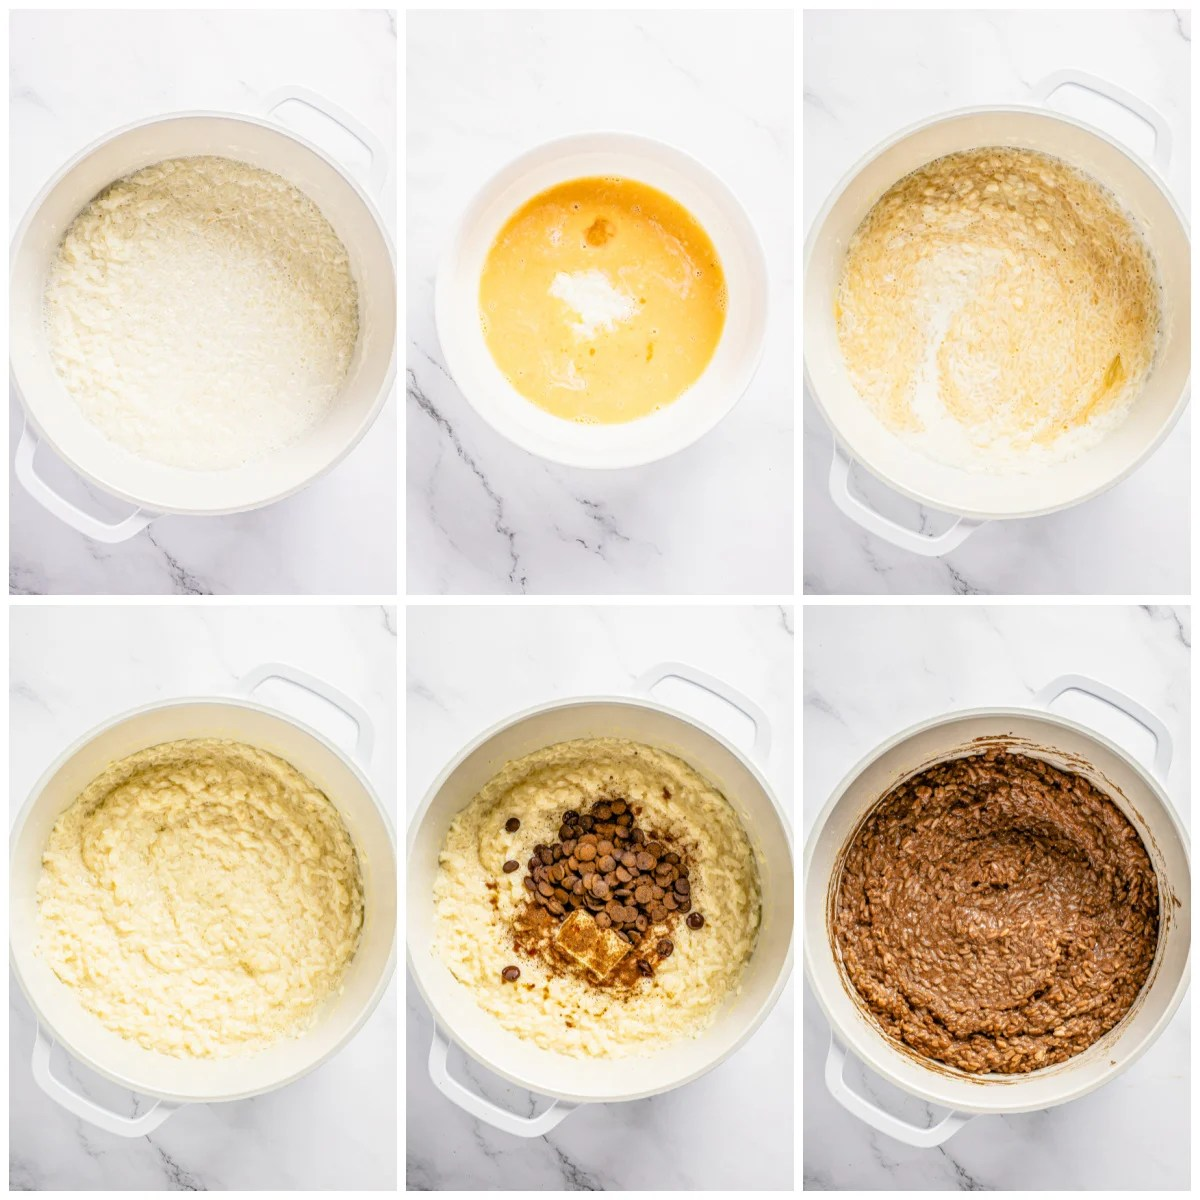 Step by step photos on how to make Chocolate Rice Pudding